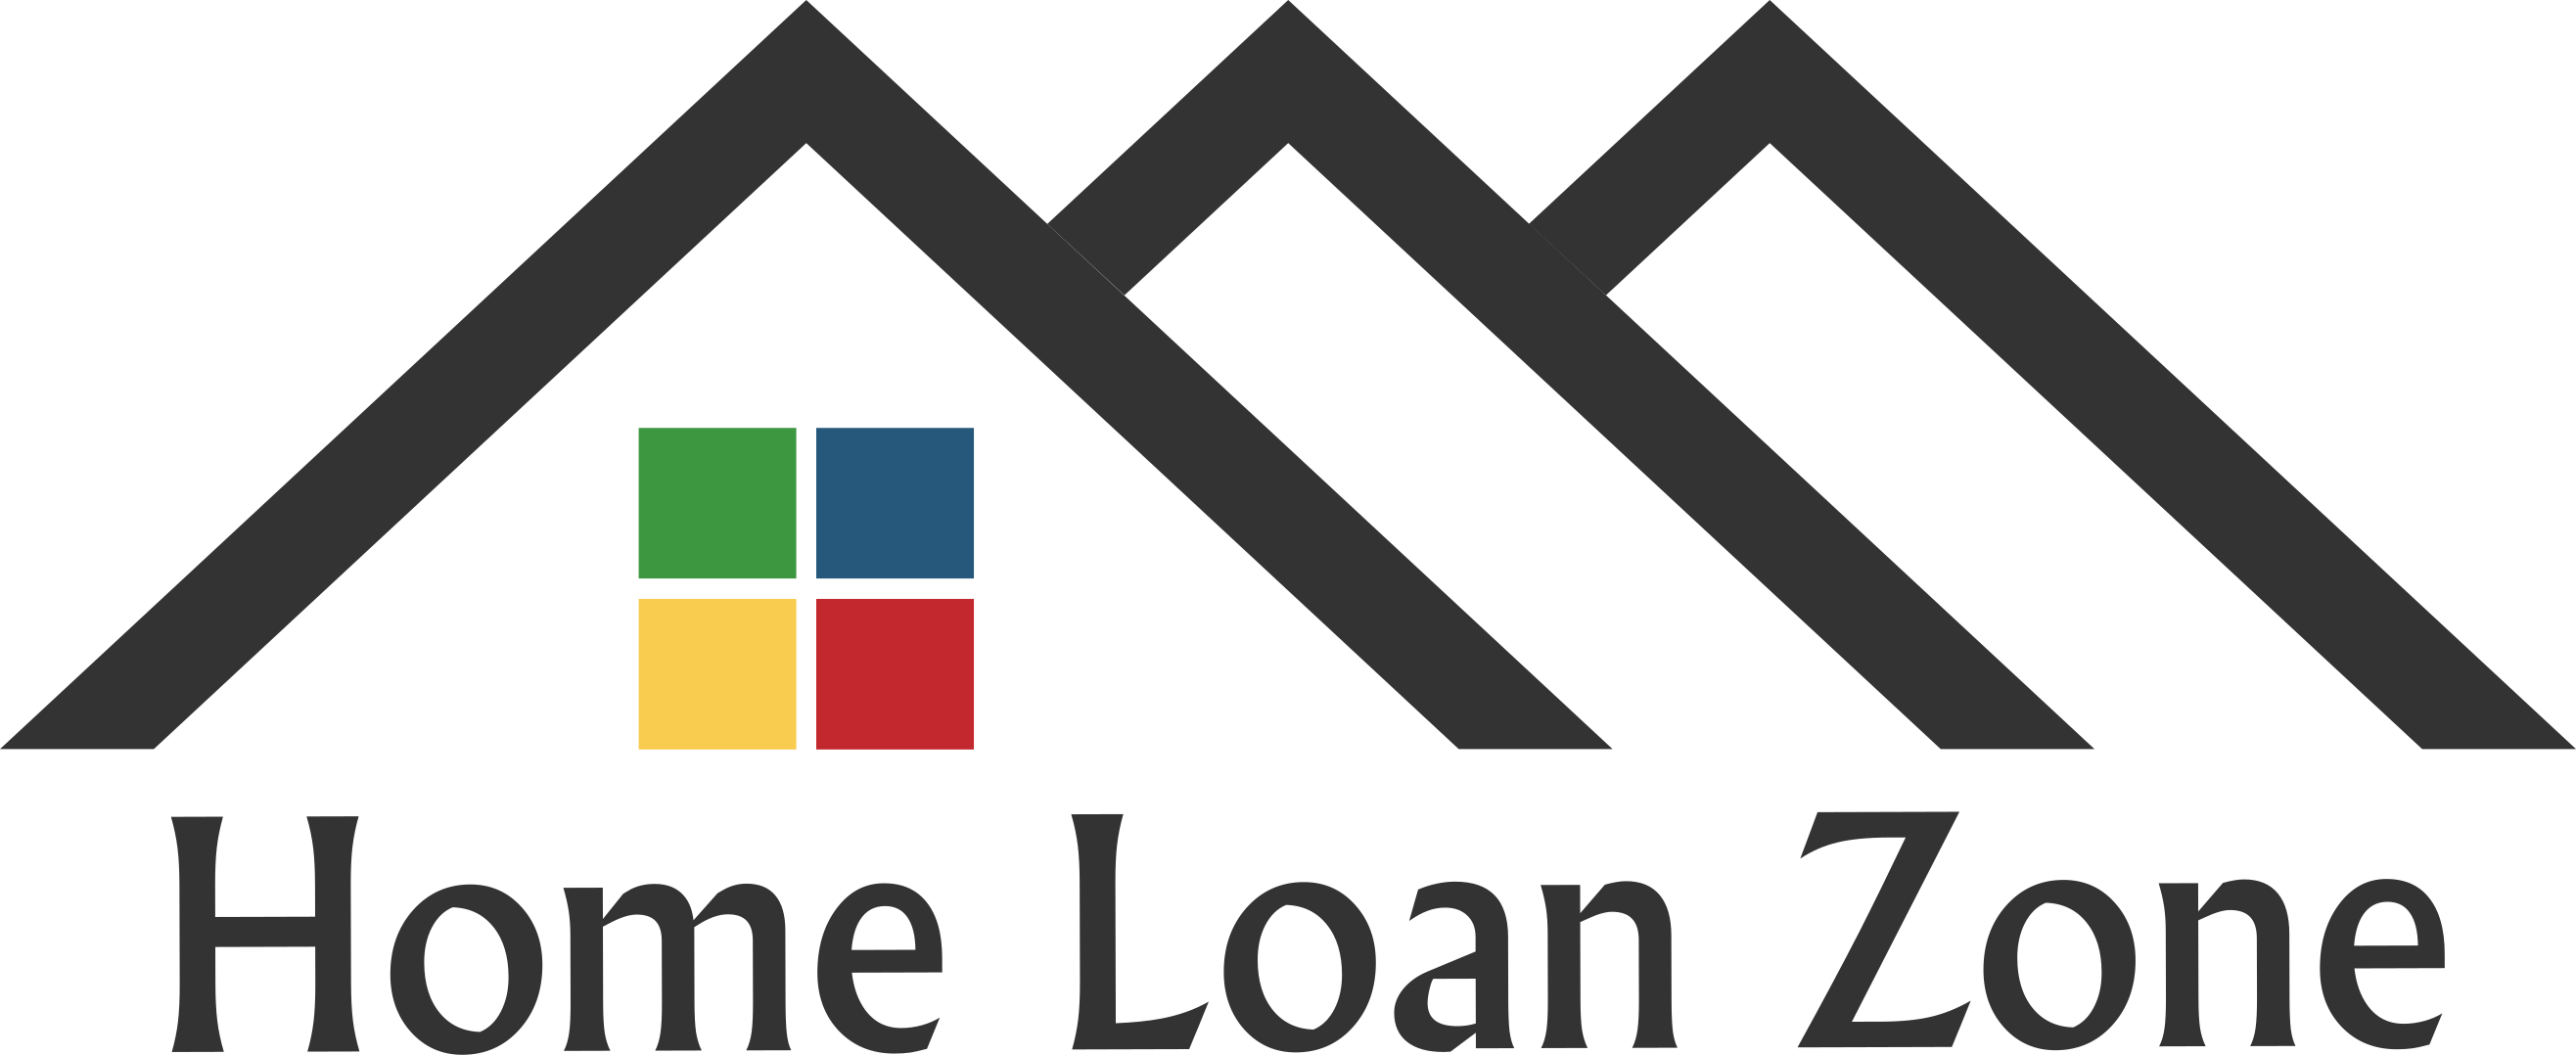 Home Loan Zone